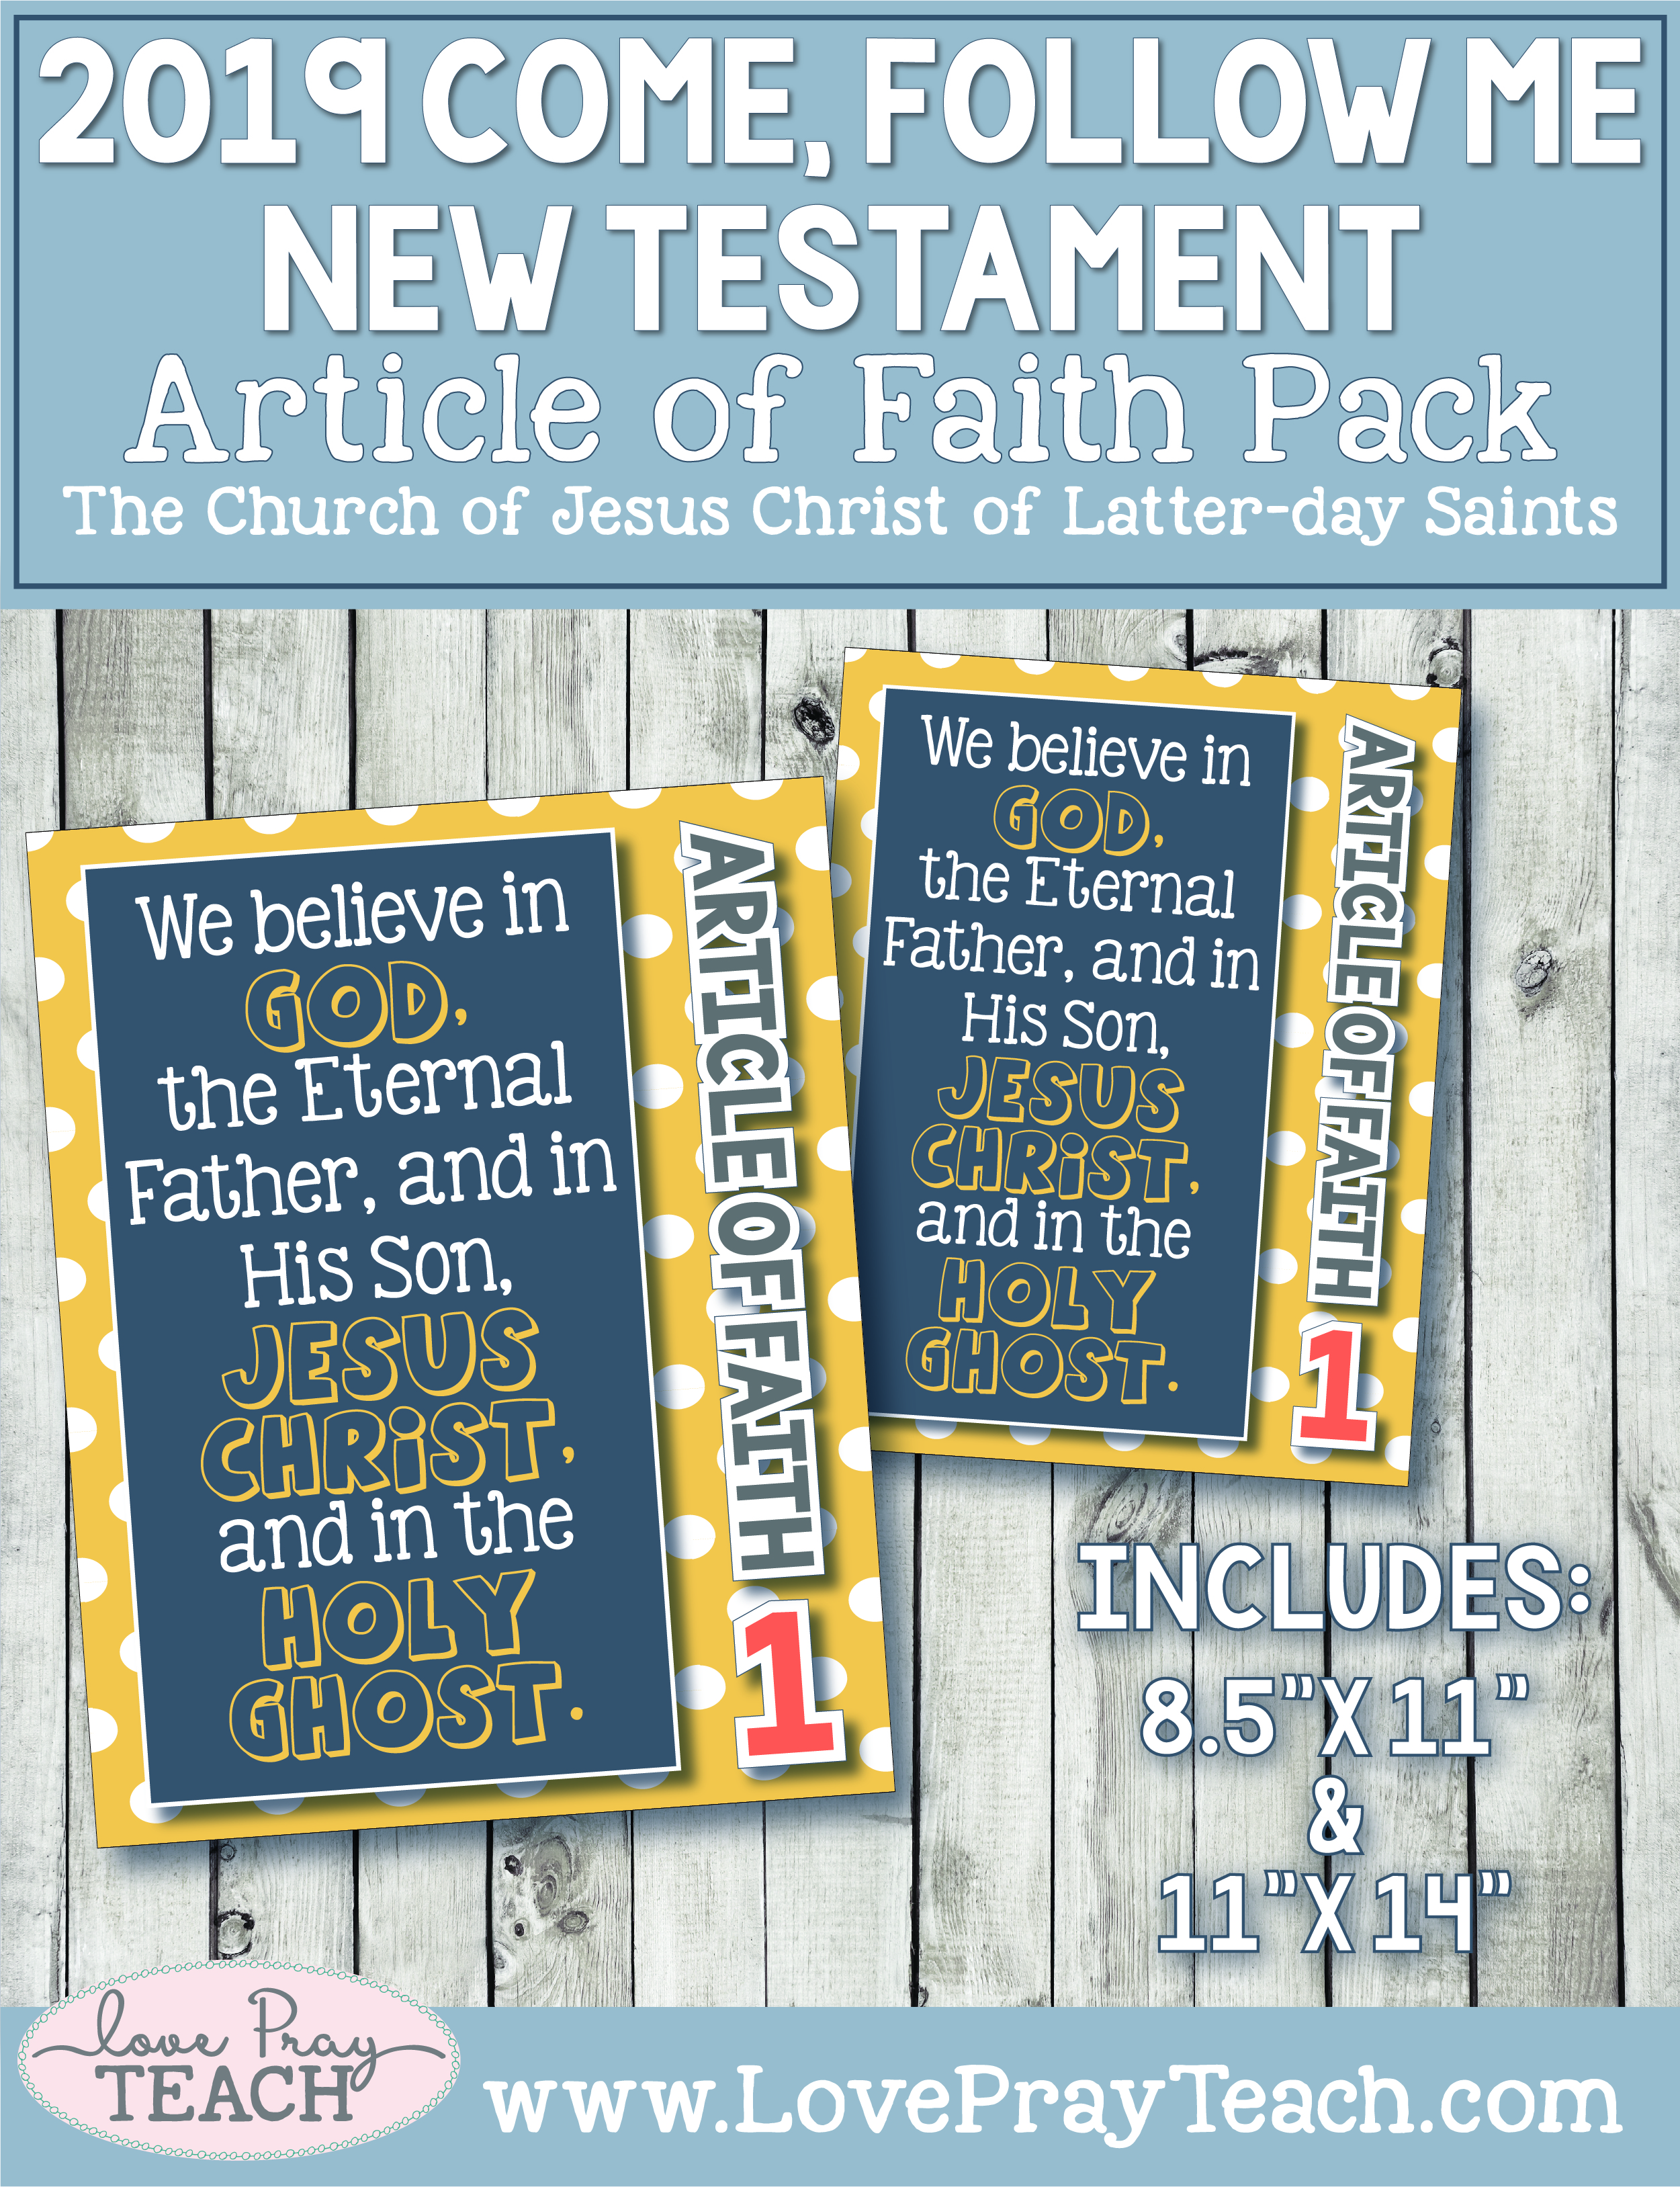 2019 Primary Articles of Faith Posters by www.LovePrayTeach.com